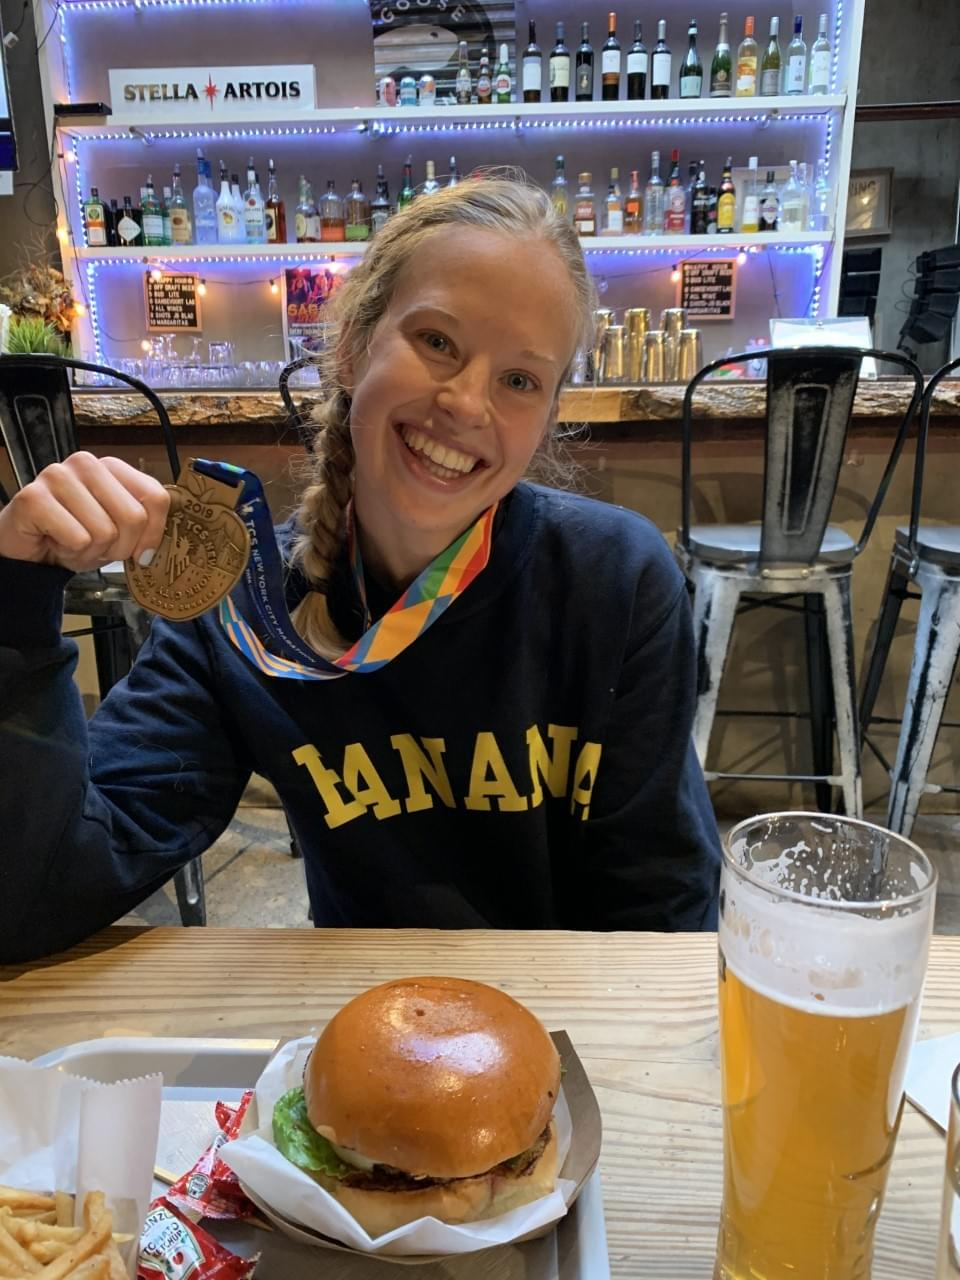 A New York marathon runner celebrates with her medal and a meal after completing the marathon